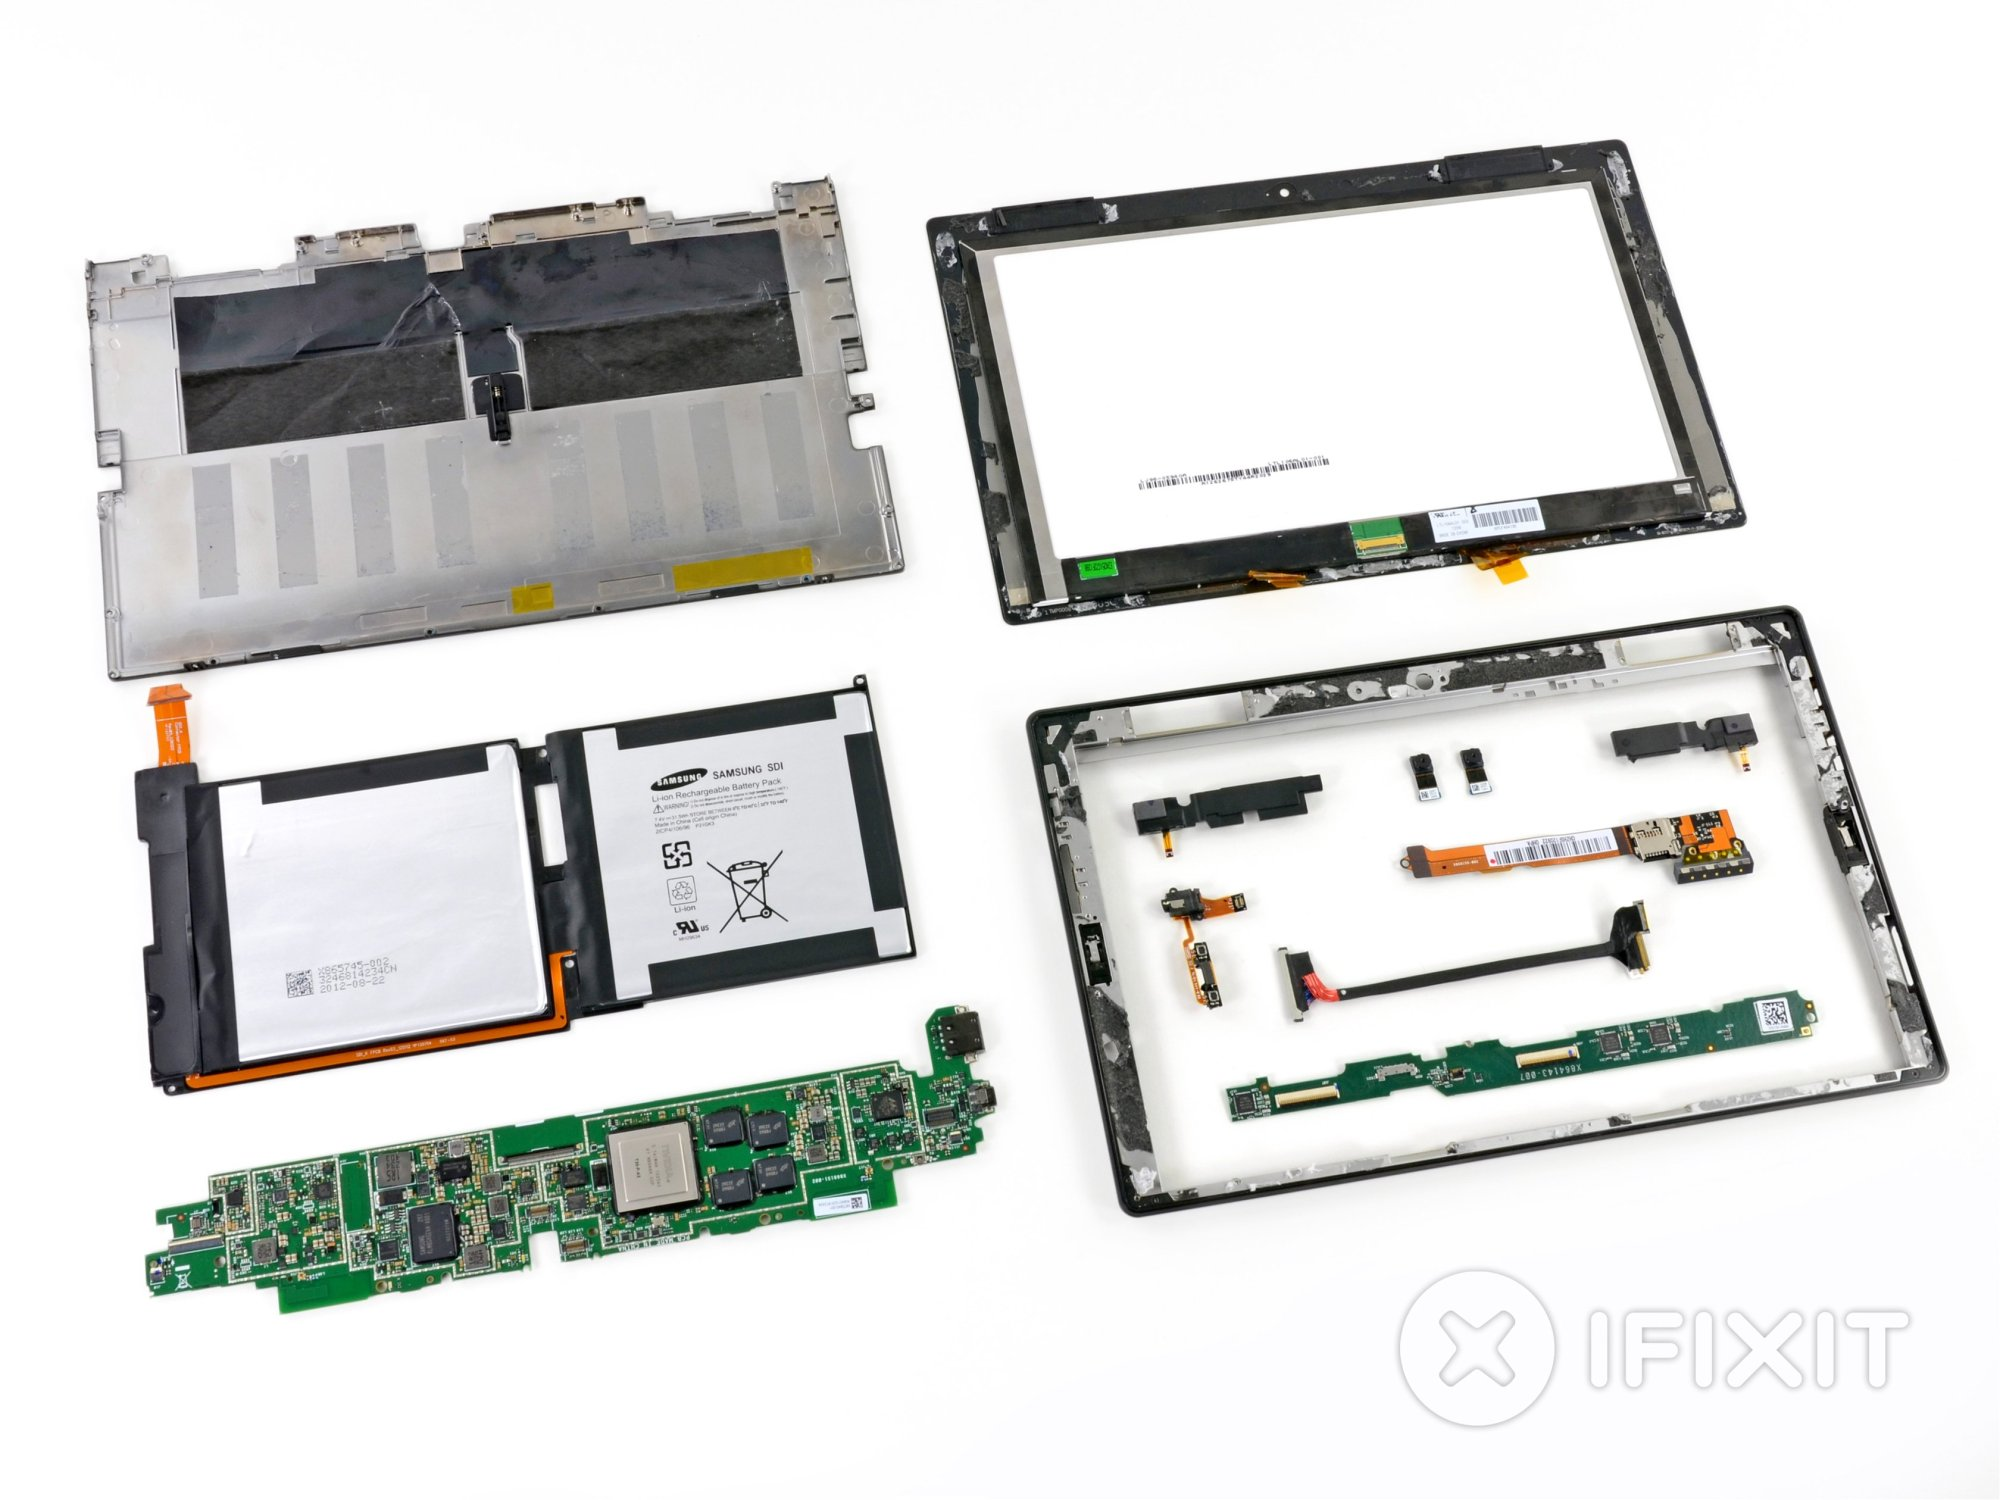 hight resolution of microsoft surface teardown ifixit 3 way switch wiring diagram